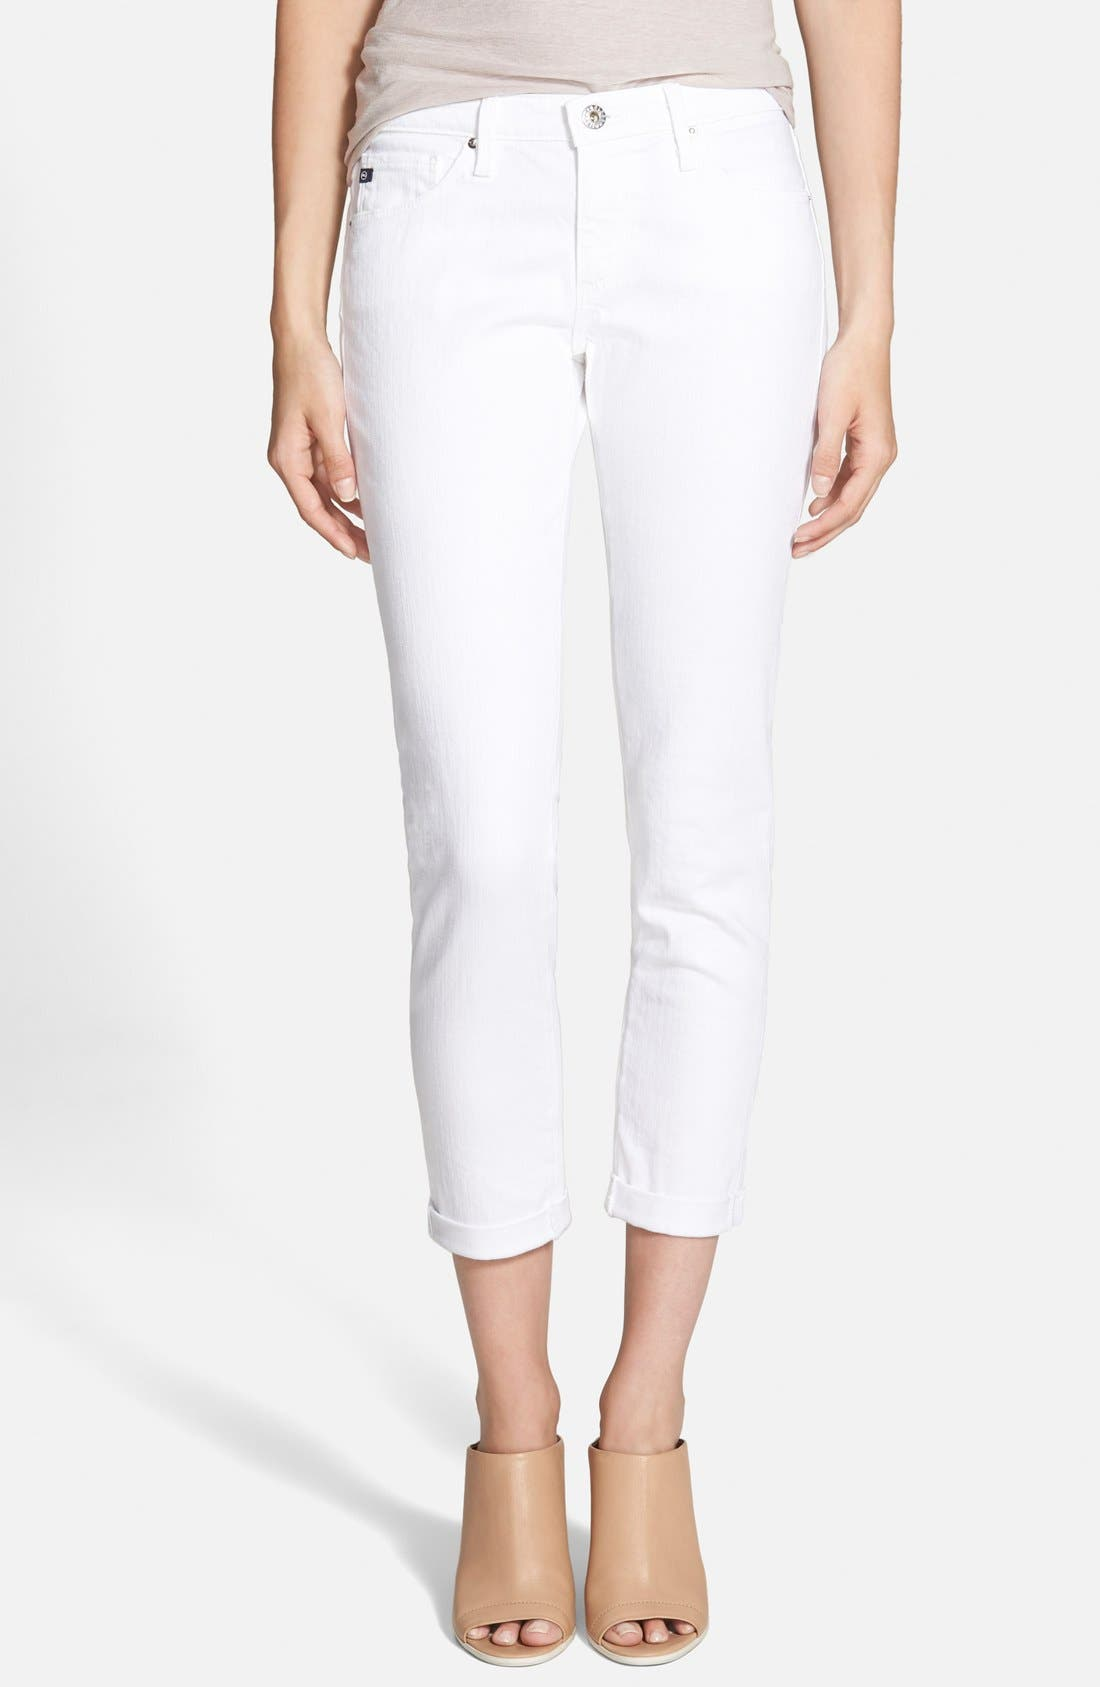 Alternate Image 1 Selected - AG 'Stilt' Roll Cuff Skinny Jeans (White)